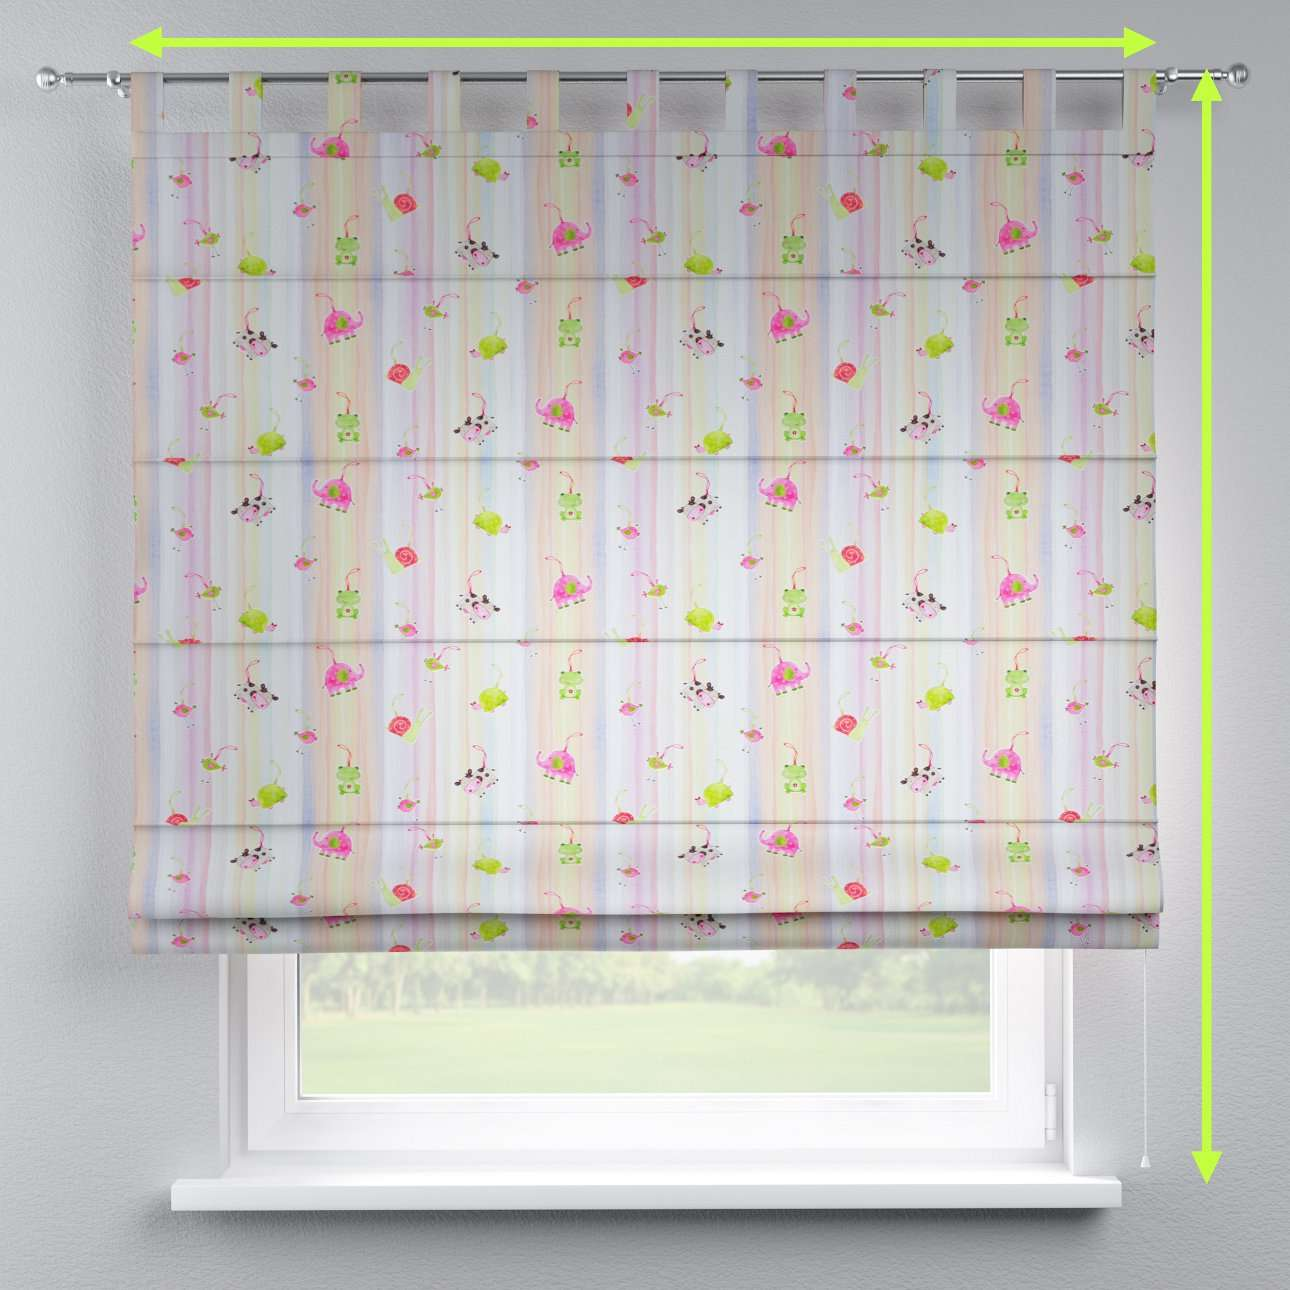 Verona tab top roman blind in collection Apanona, fabric: 151-05